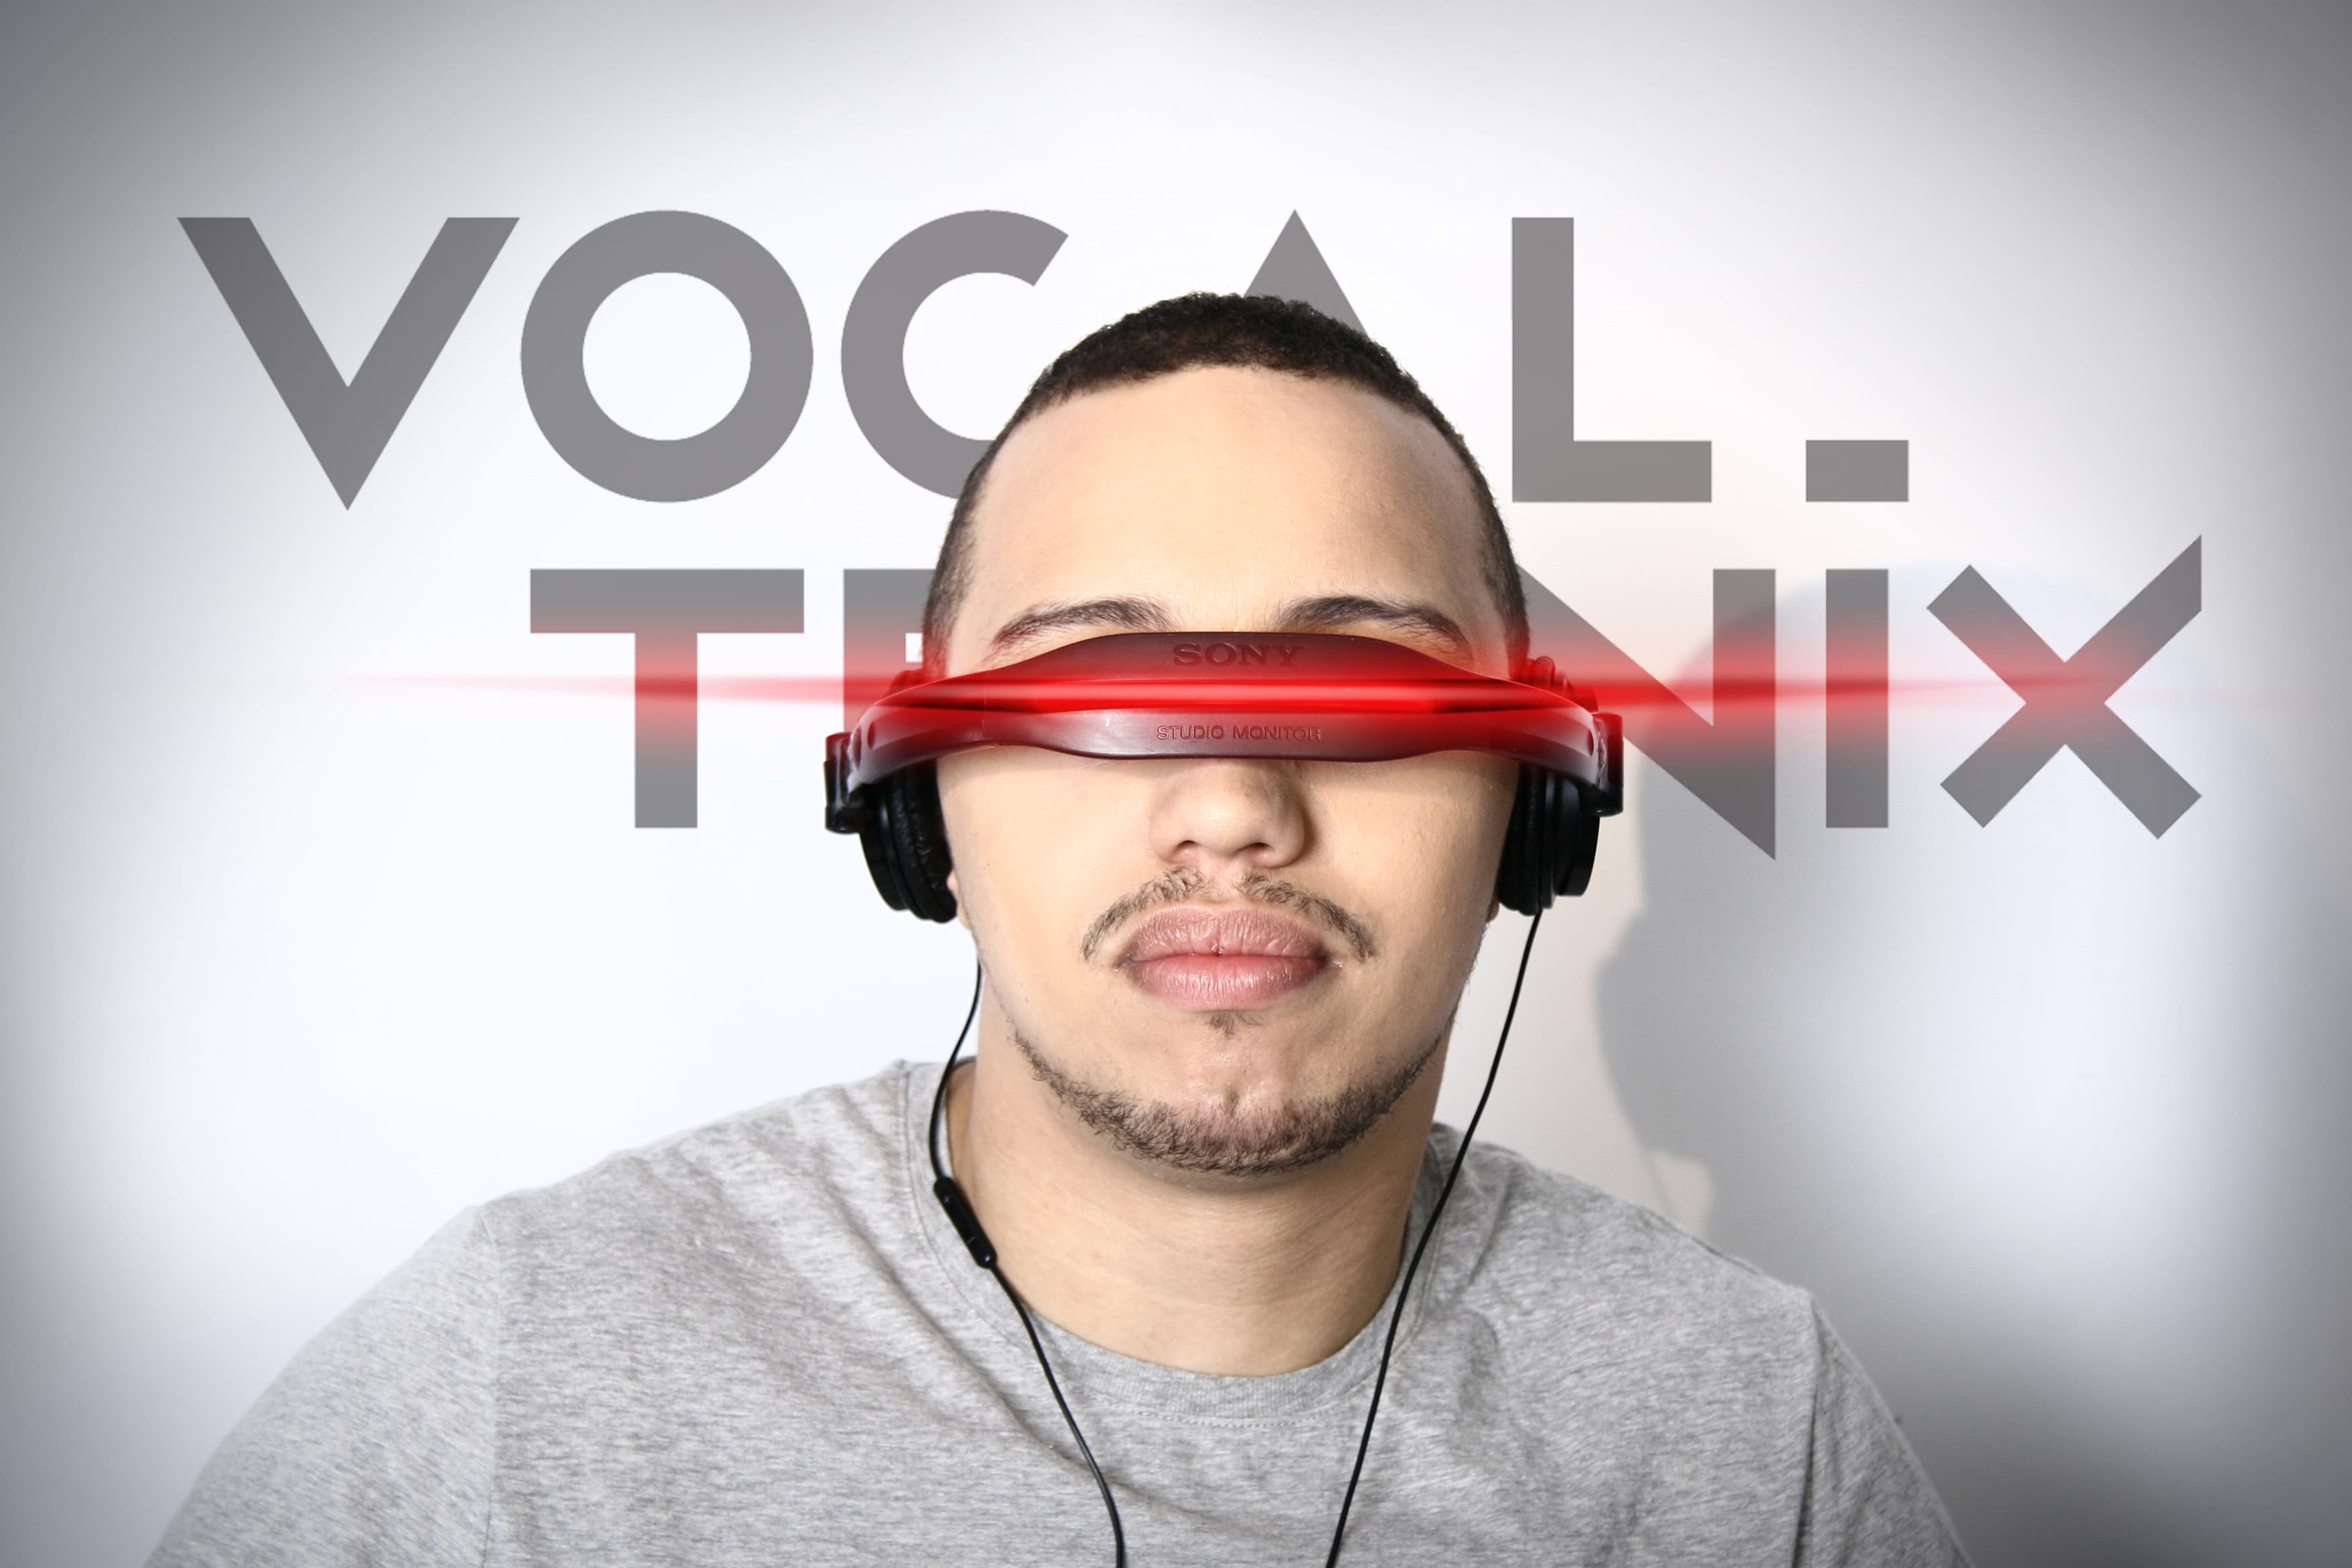 vocal_cyclop1